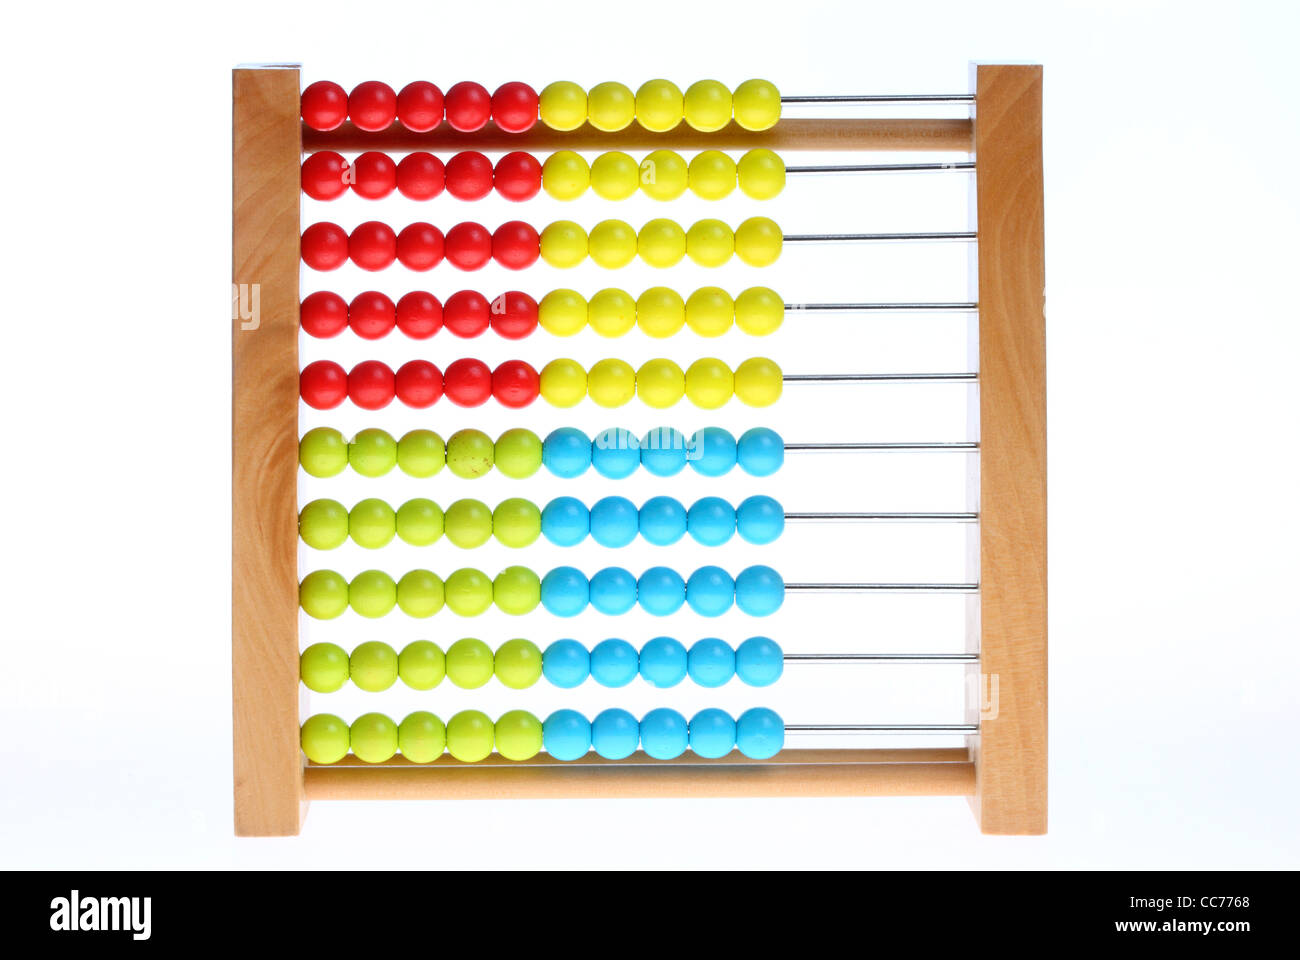 learn simple addition and on abacus - HD1300×960